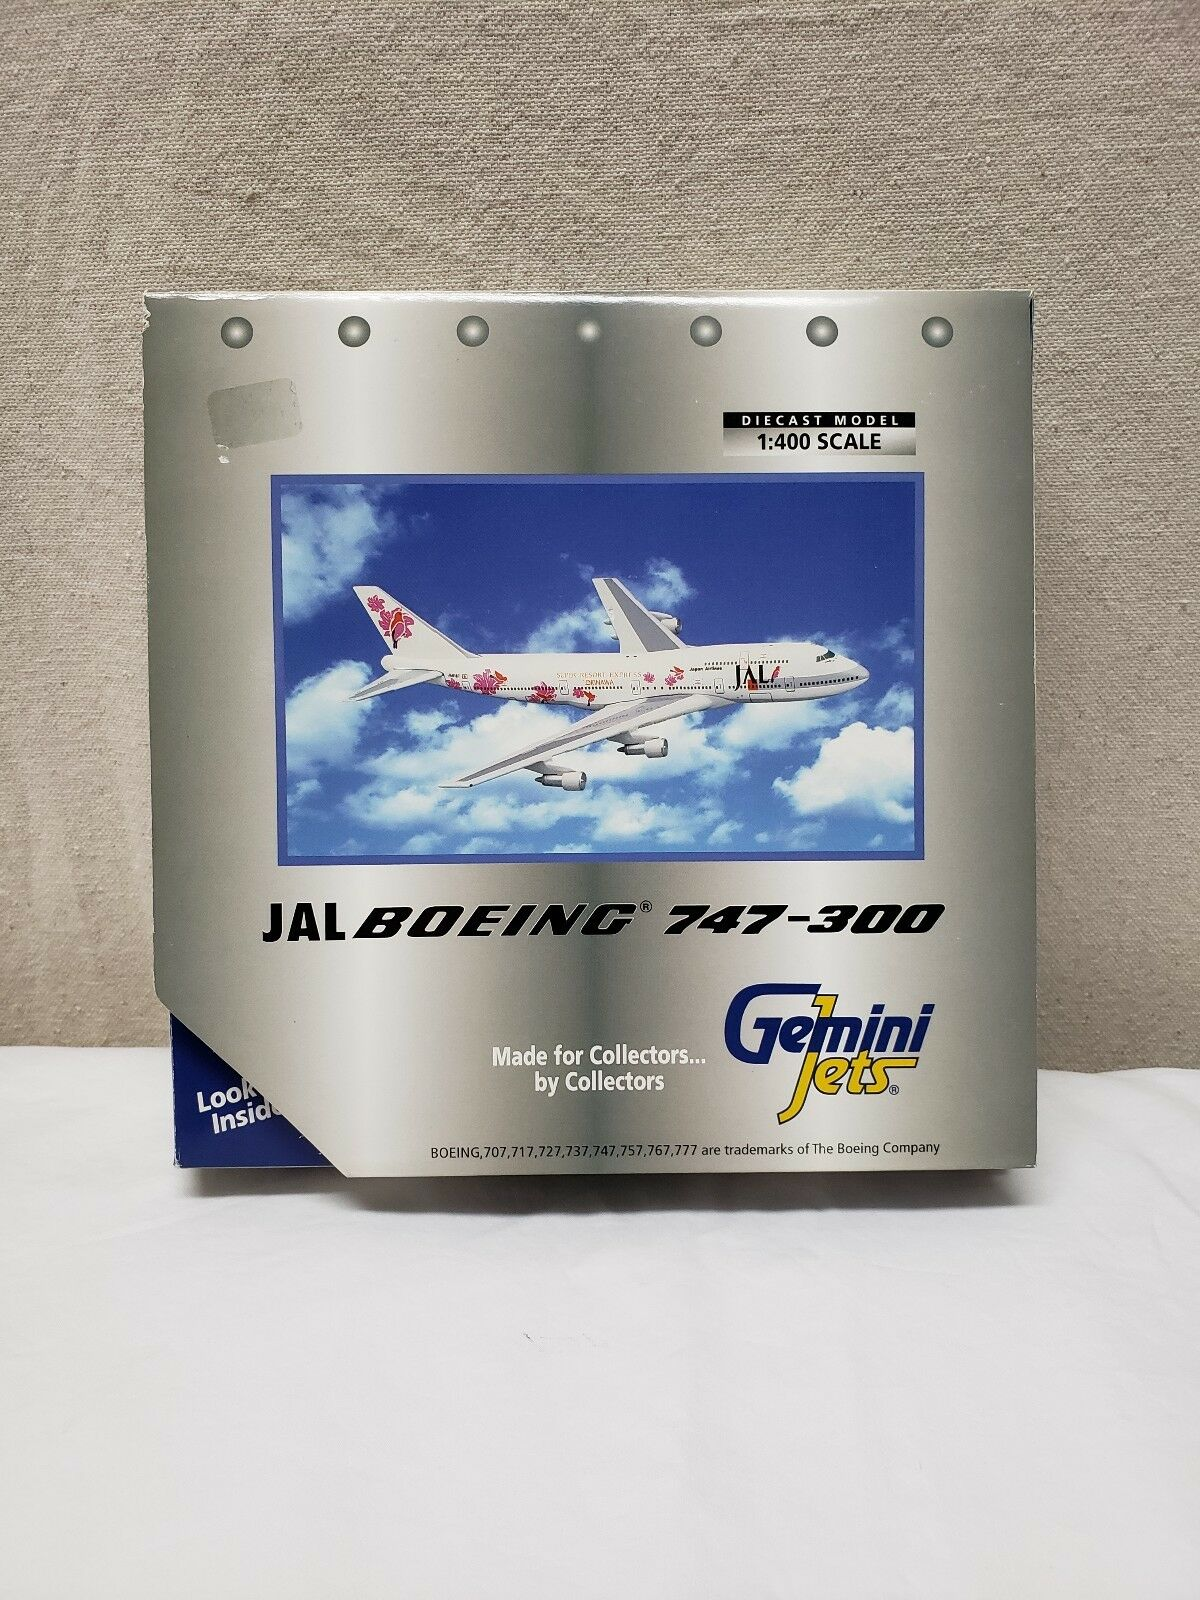 Jal Boeing 747-300 Gemini Jets Diecast Model 1:400 Scale Airplane Aviation Jet